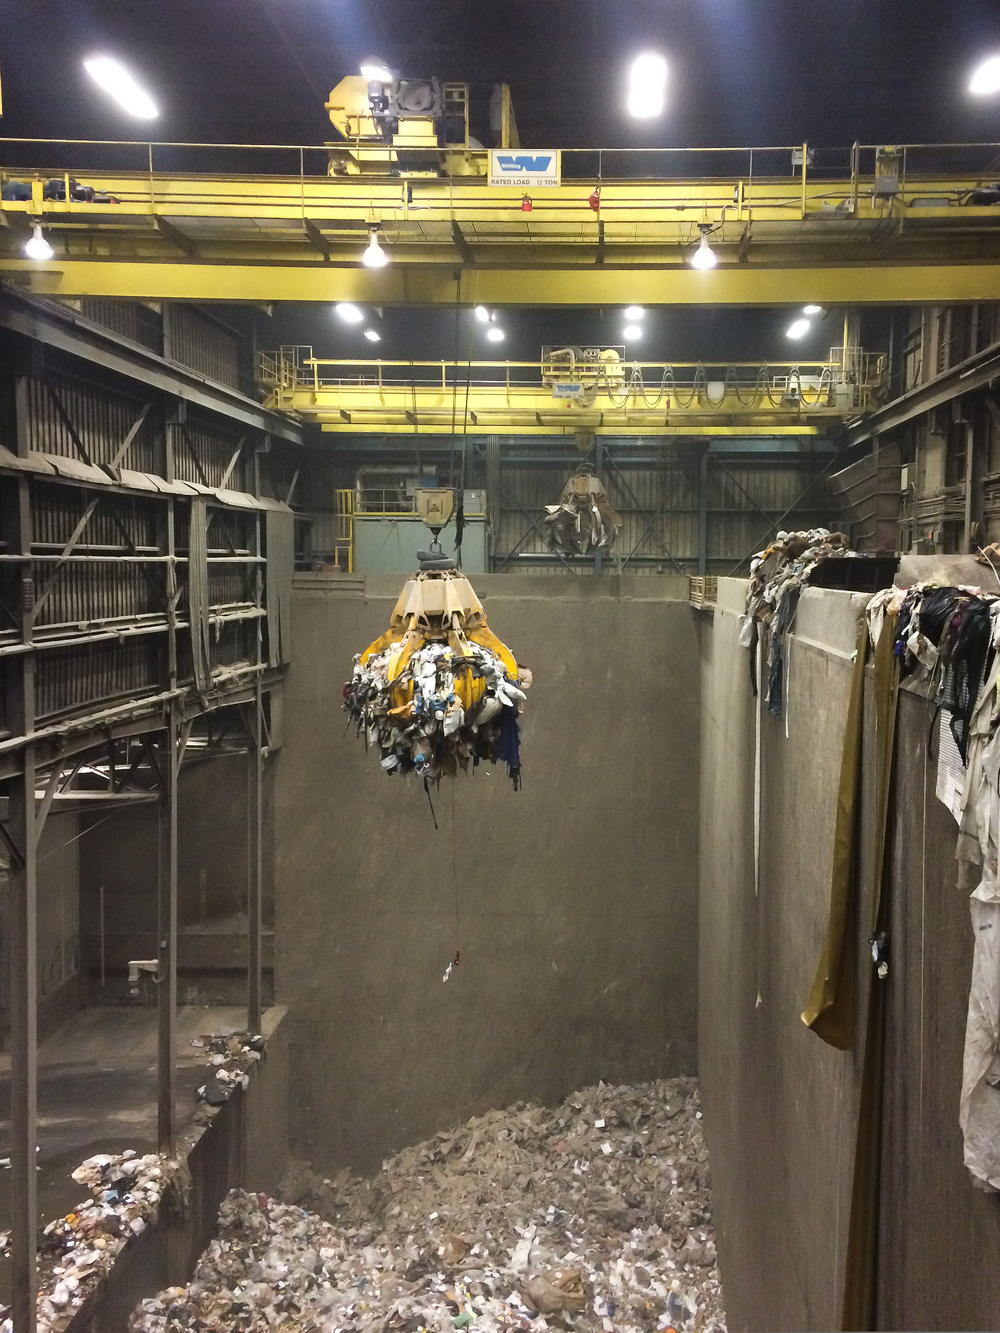 The tipping floor on the left is where garbage trucks dump their loads. Waste is then pushed into the pit. The crane moves waste around - pulling out large objects like mattresses and bicycles. Loads are then craned into the burners on the right, where waste is incinerated, and heat captured and turned into energy.